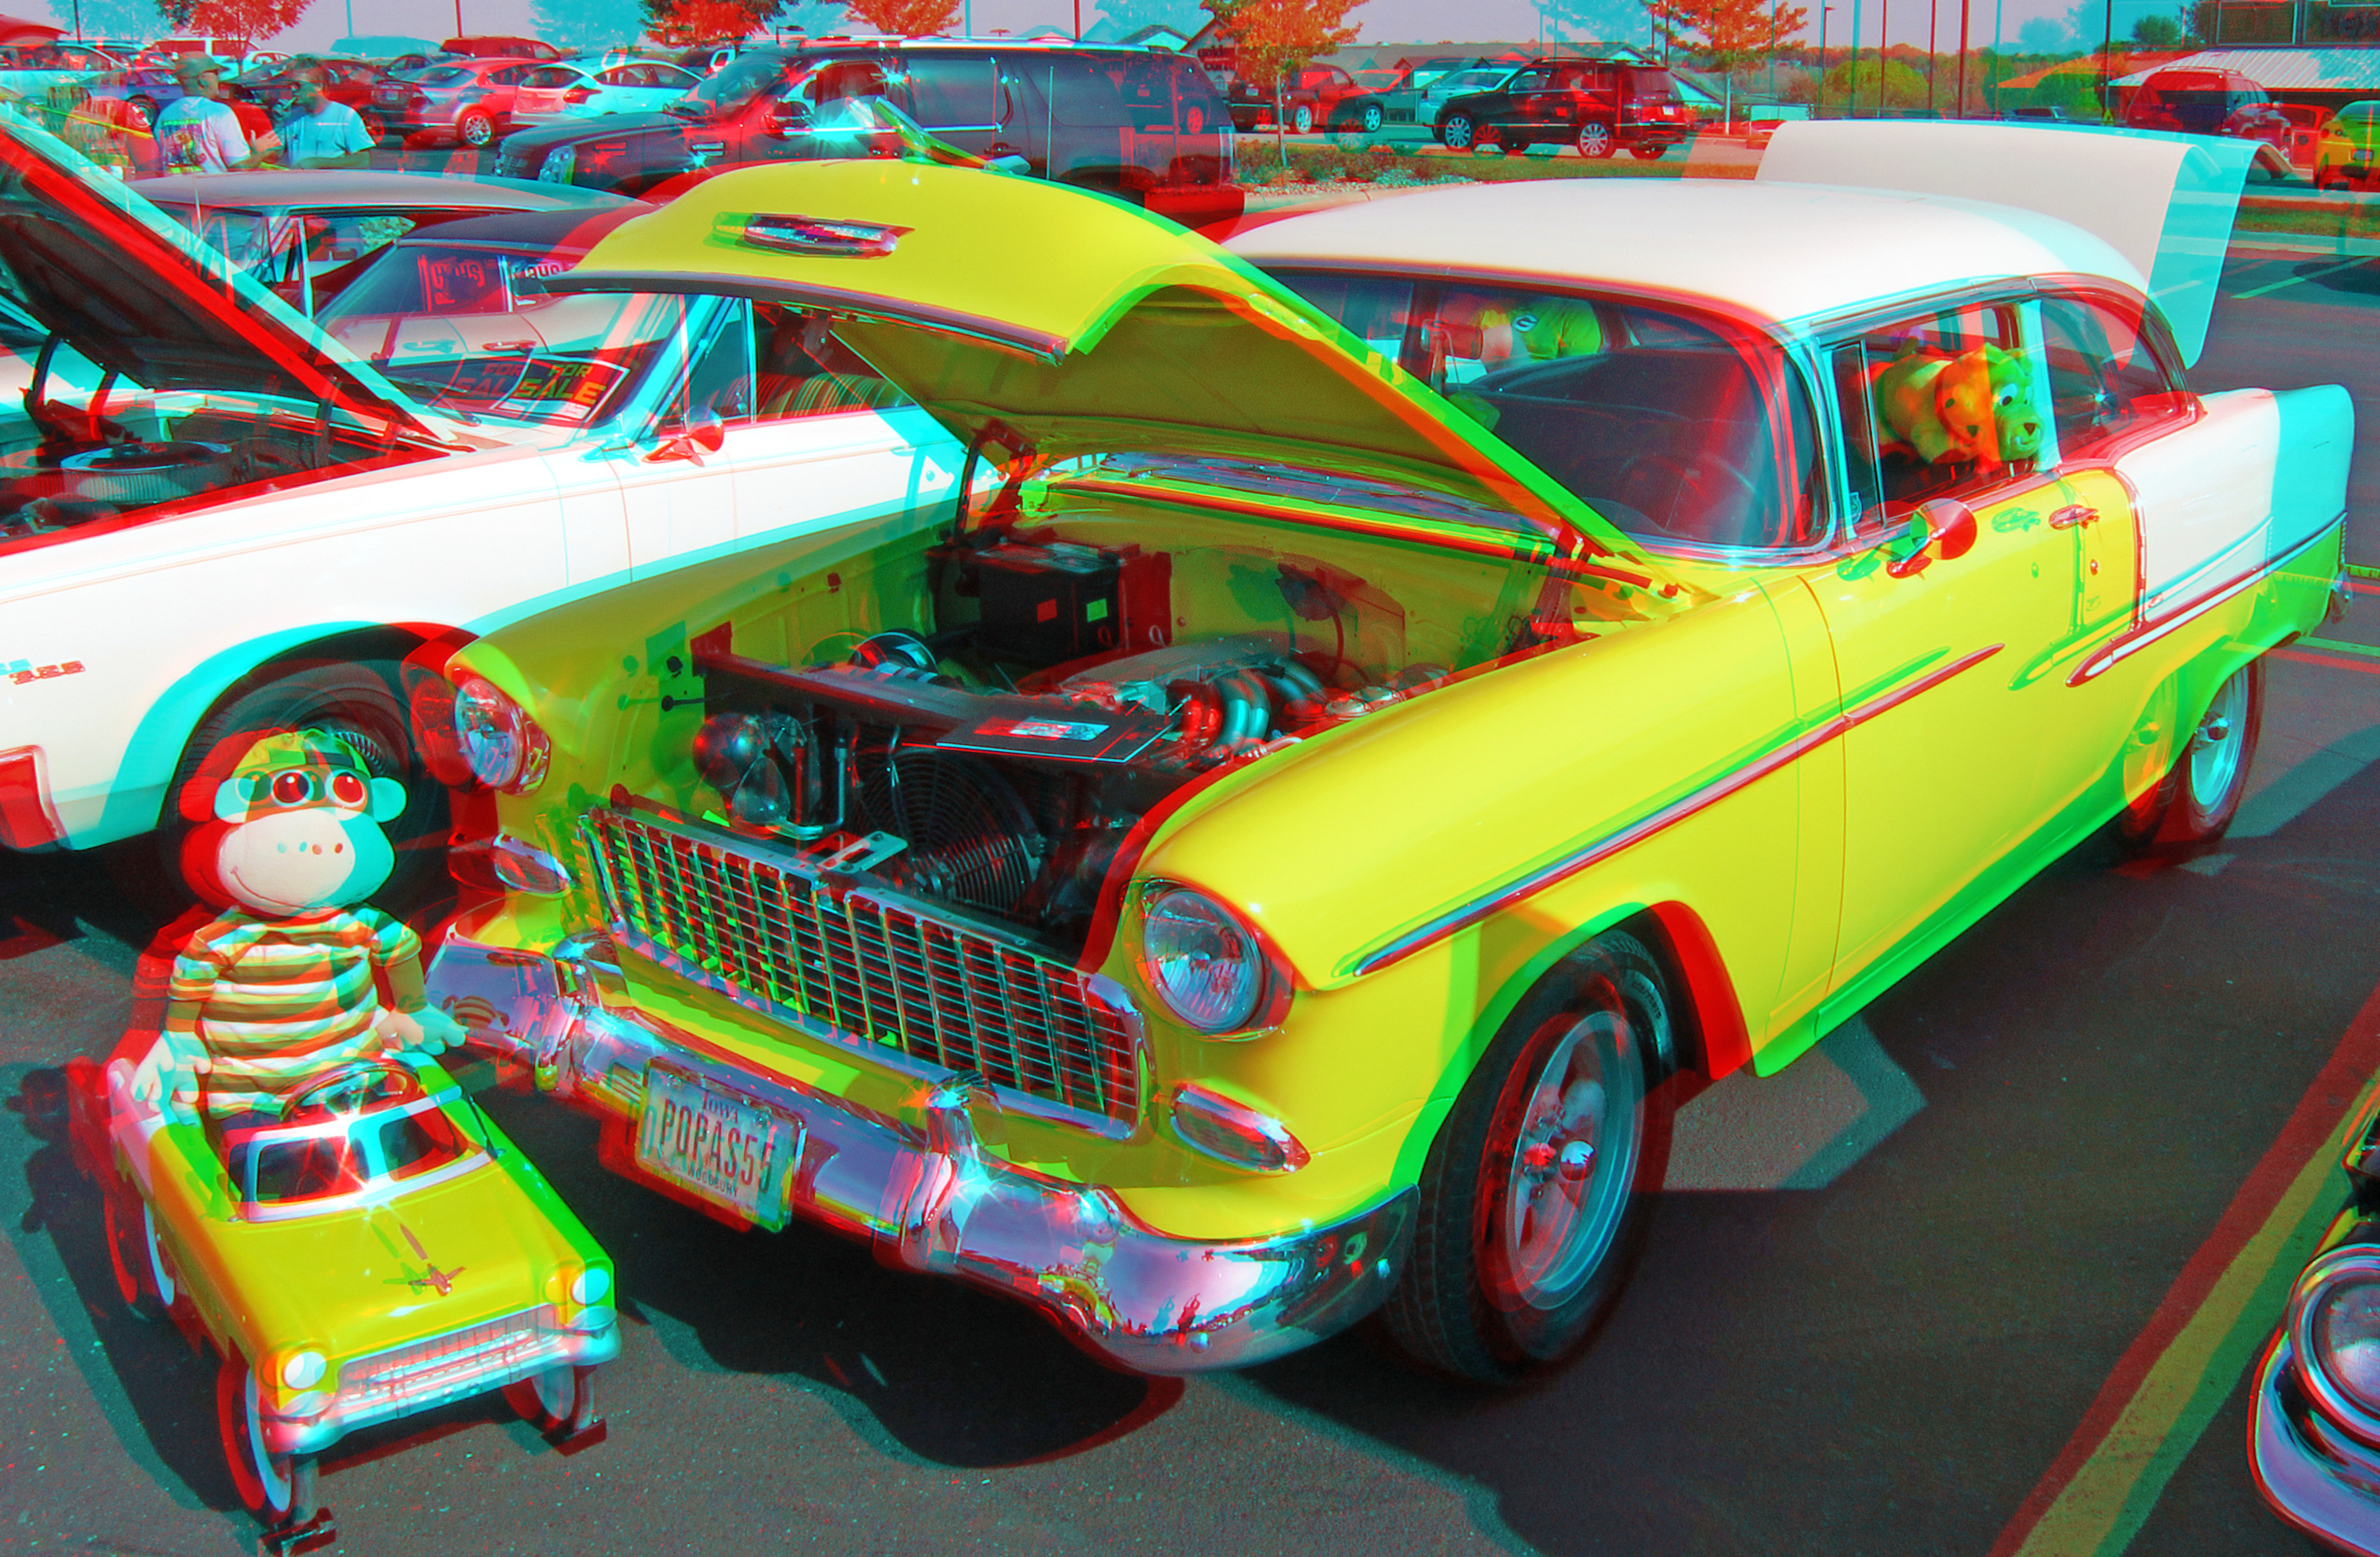 Jimf 09 30 12 0052a view with 3d red cyan glasses by Sioux falls craigslist farm and garden